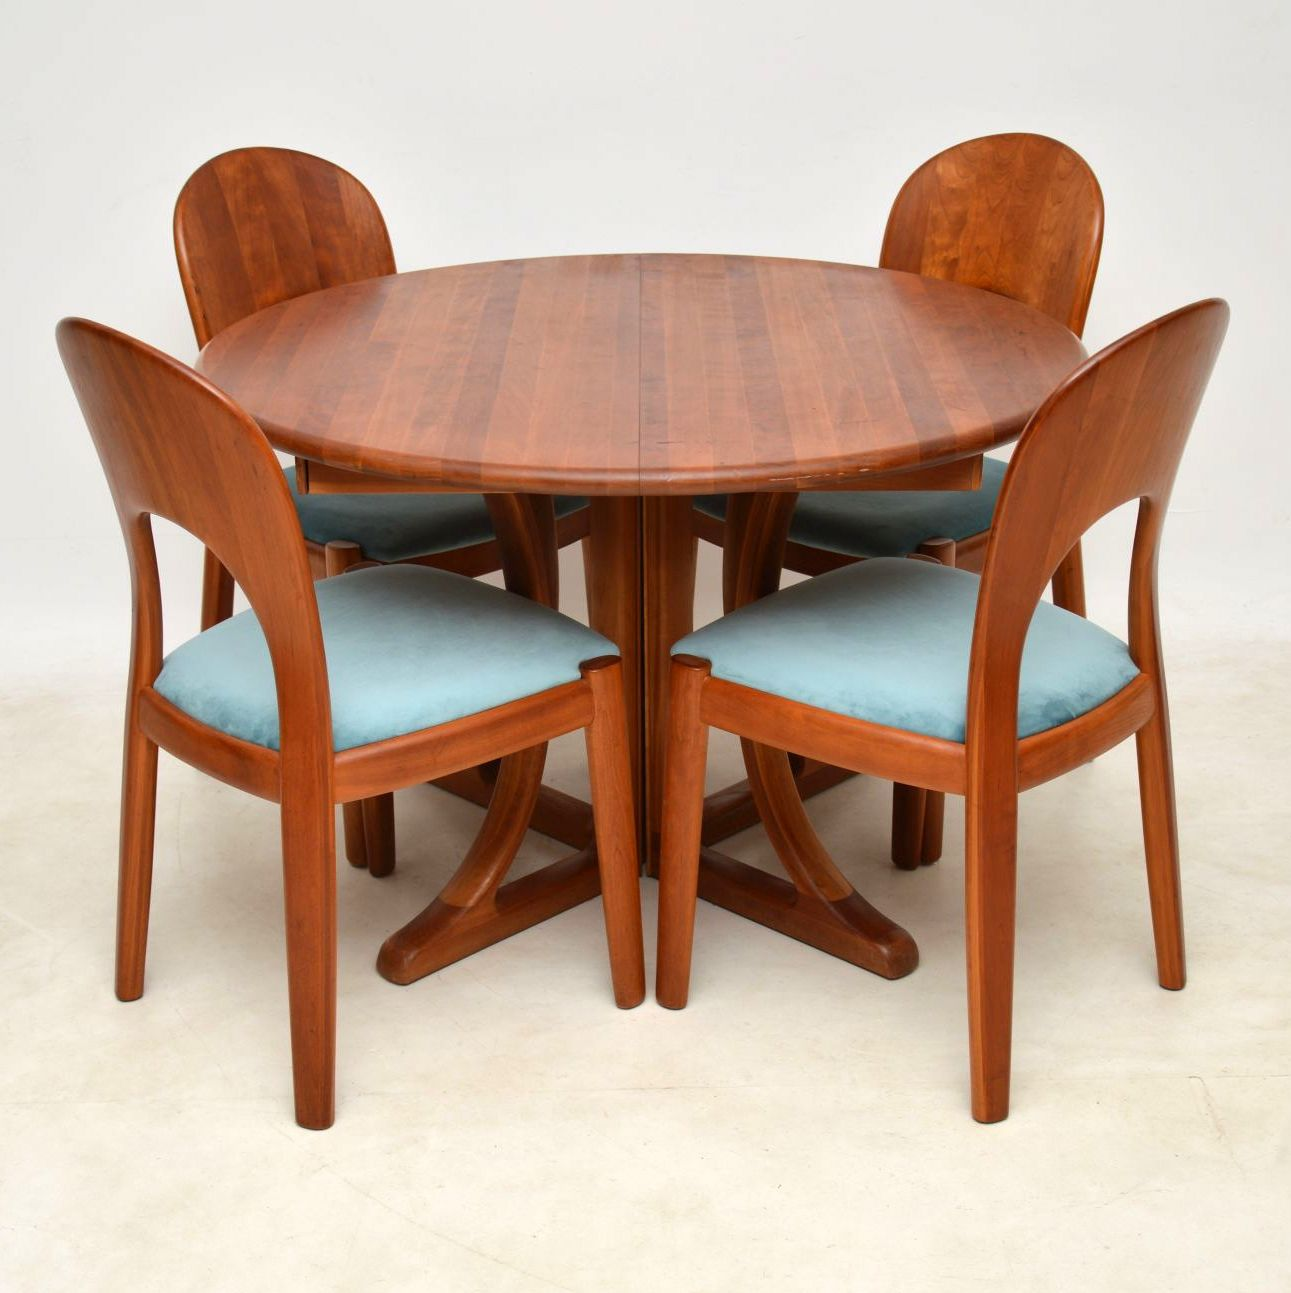 Teak Dining Table And Chairs: 1960's Danish Teak Dining Table & Chairs By Niels Koefoed